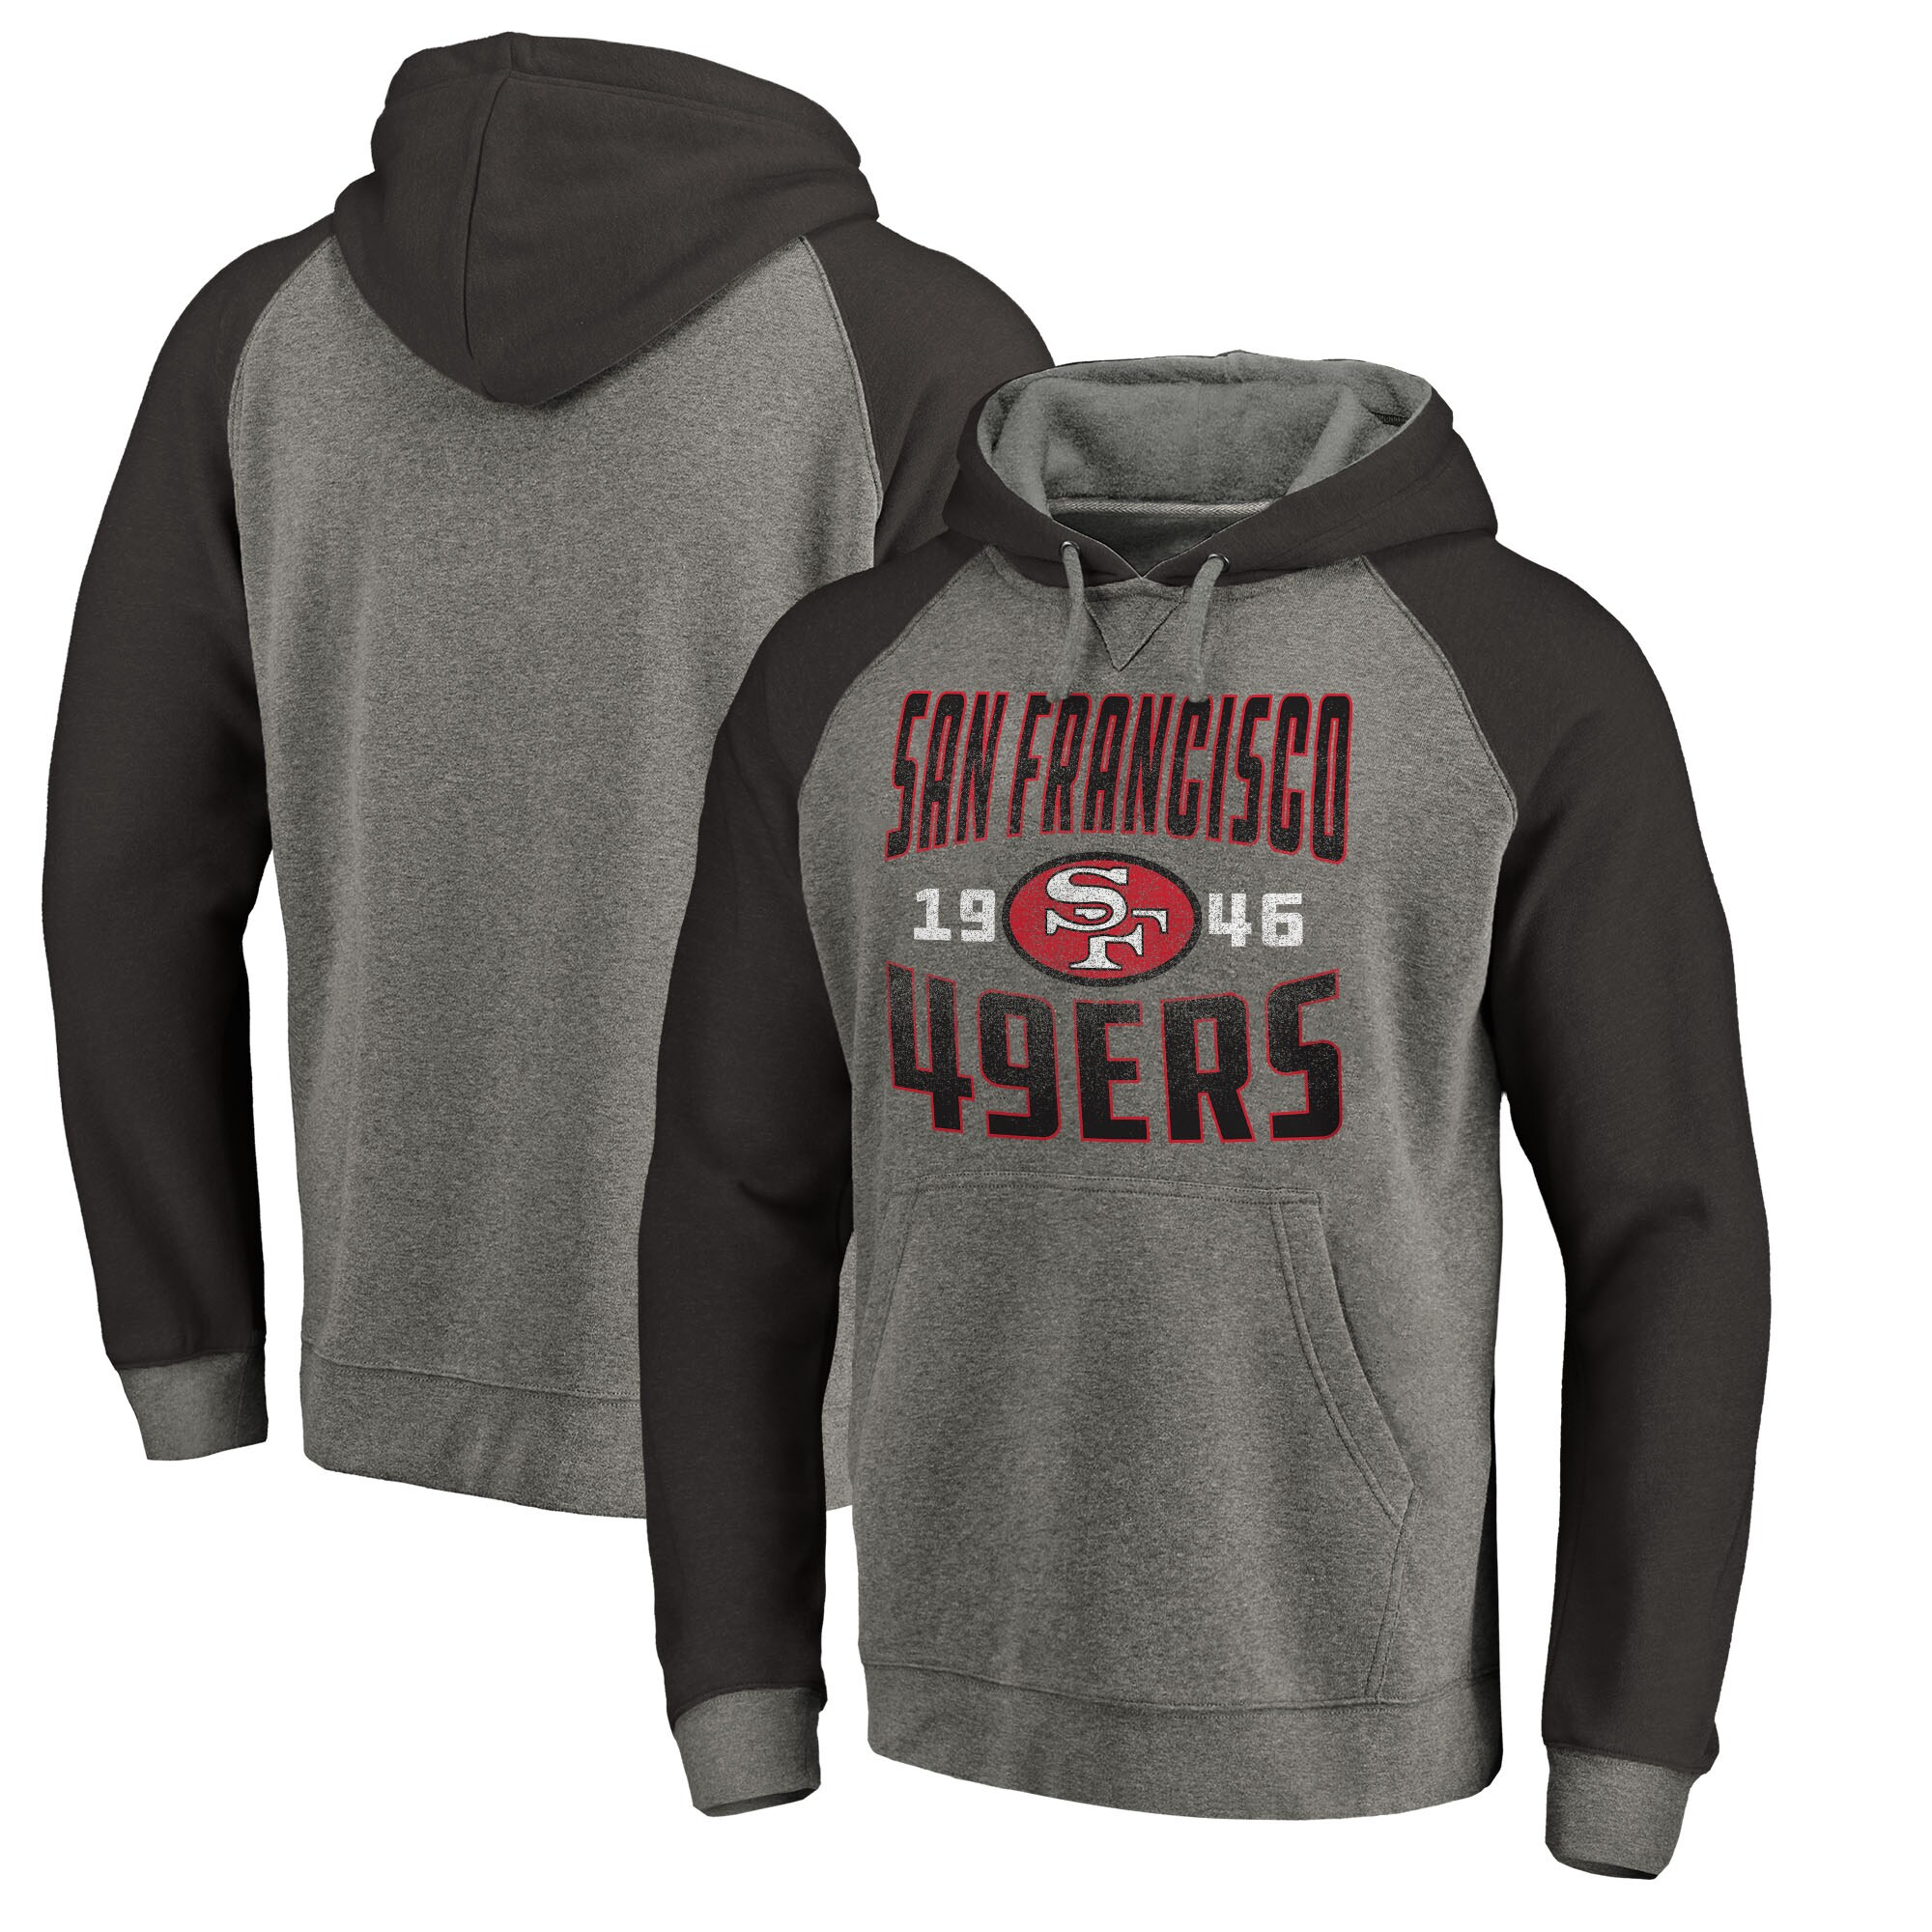 San Francisco 49ers NFL Pro Line by Fanatics Branded Timeless Collection Antique Stack Tri-Blend Raglan Pullover Hoodie - Ash